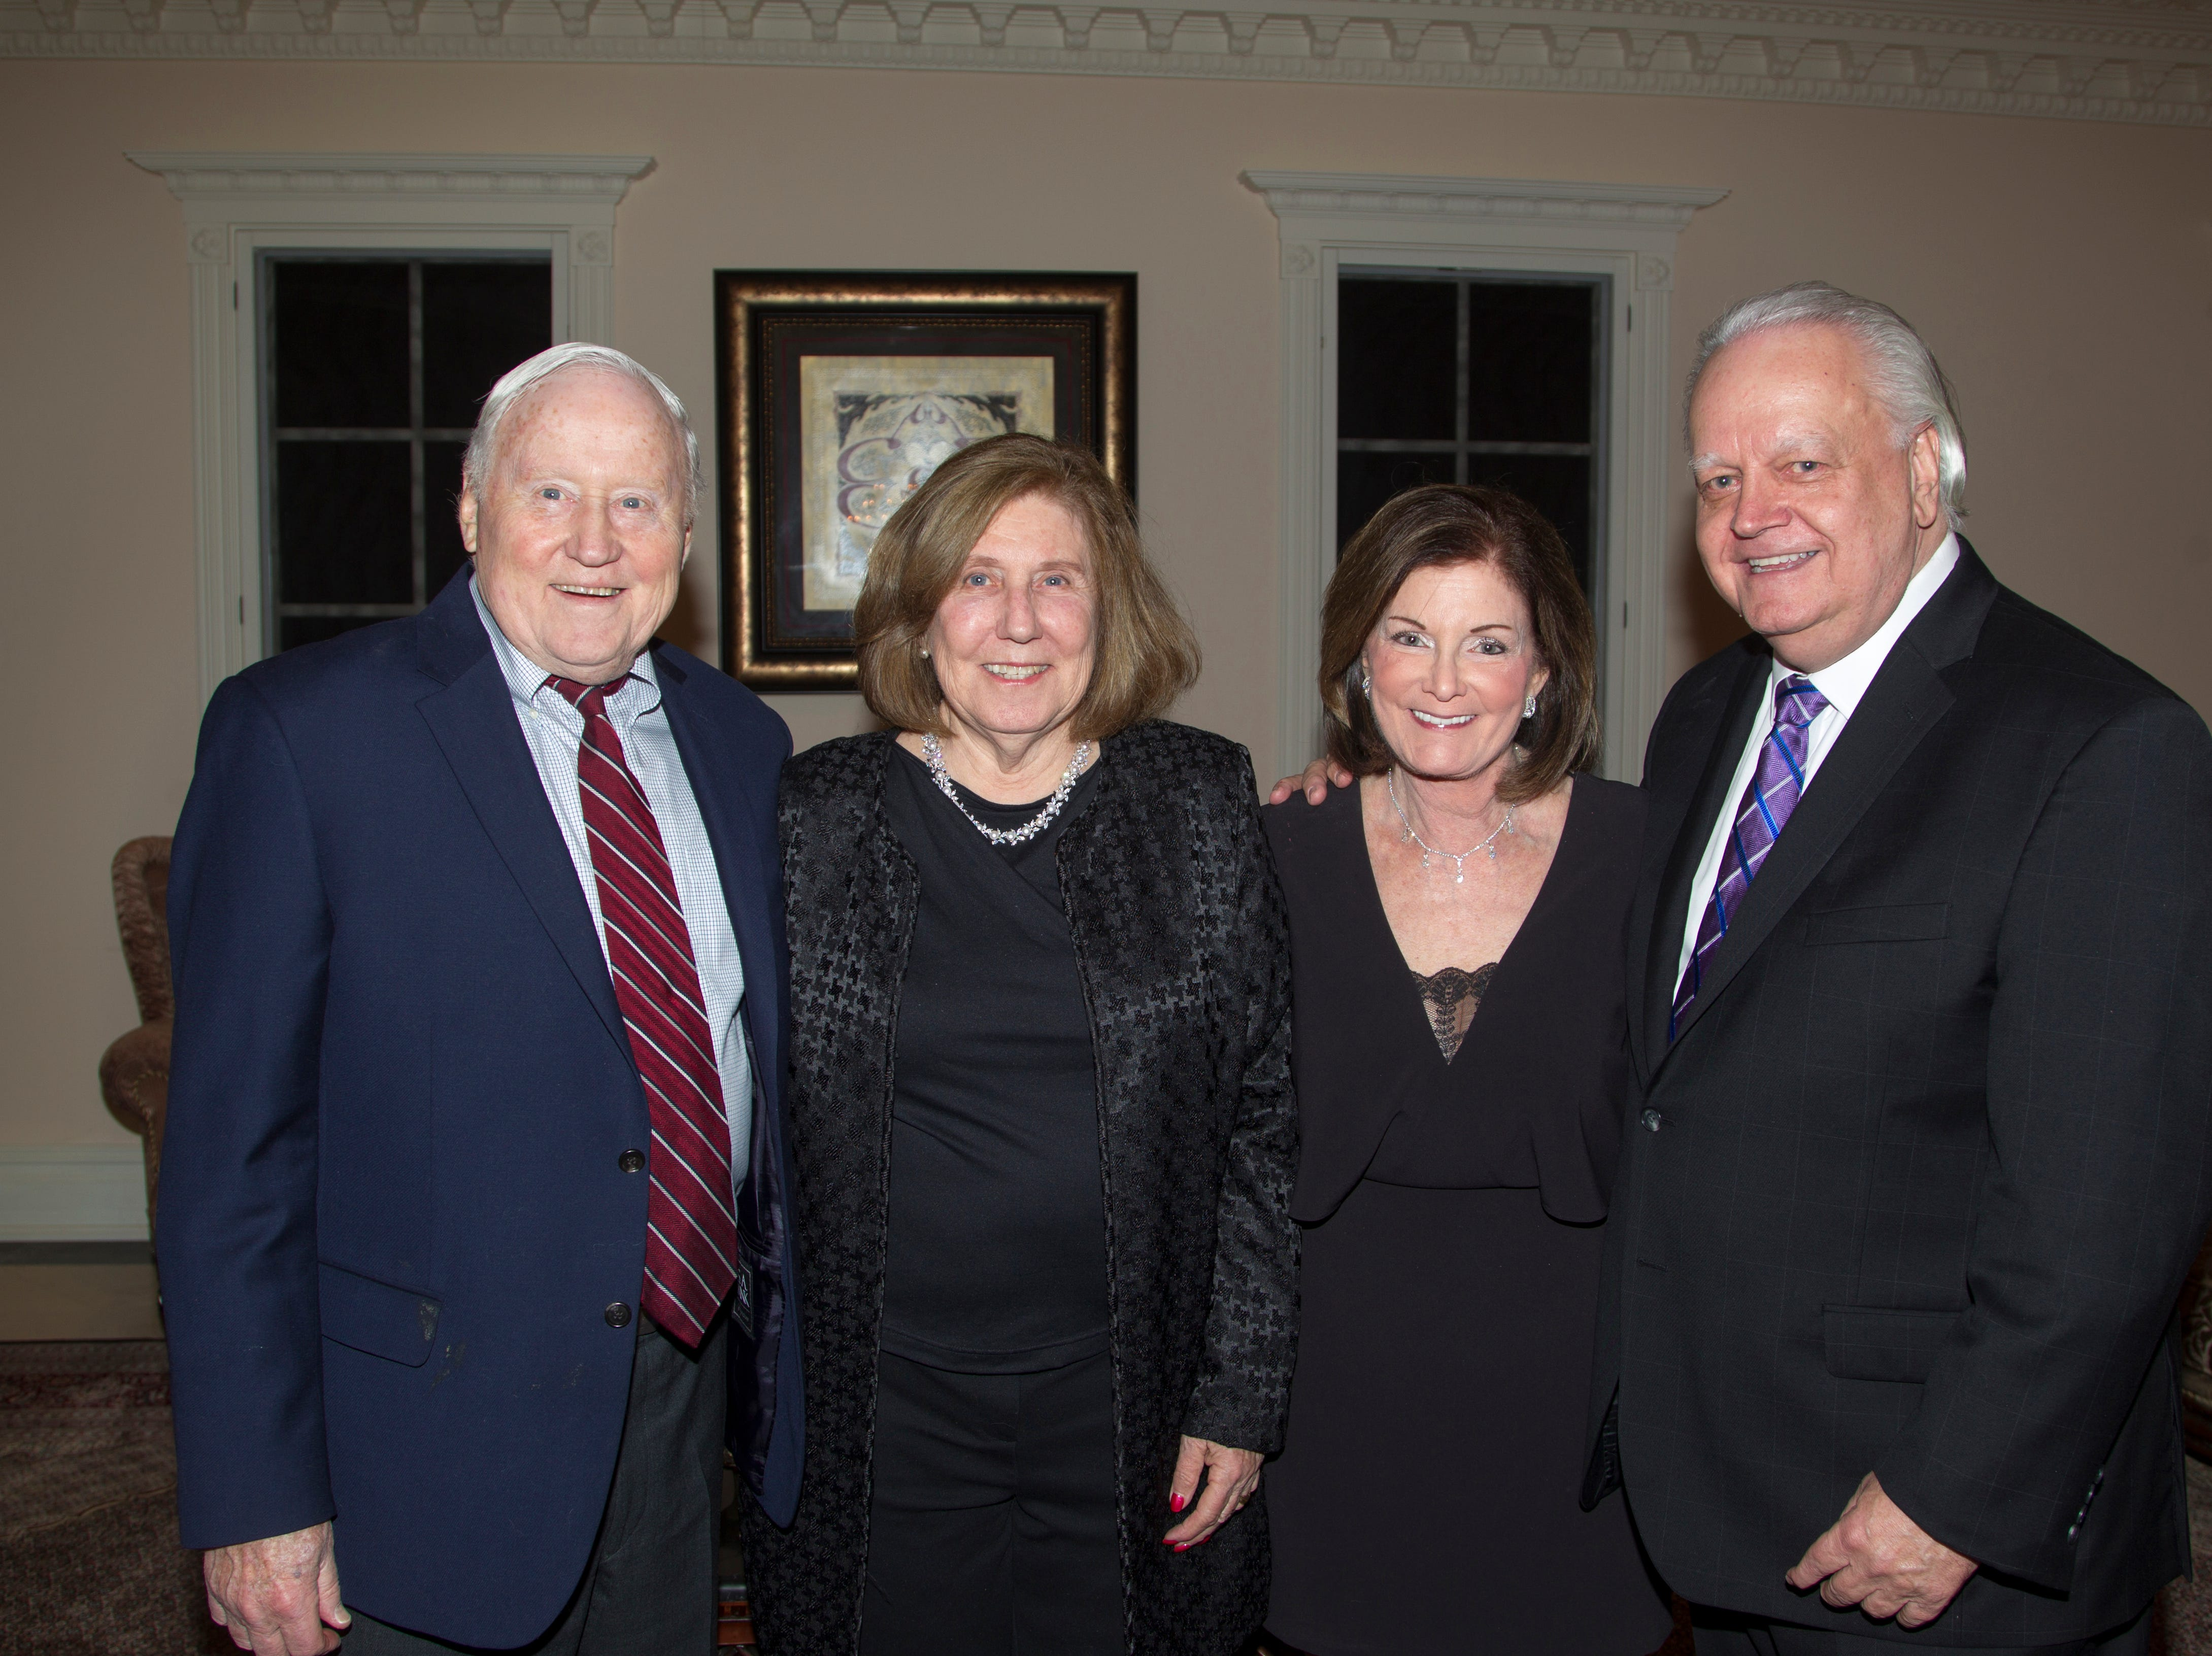 Bob and Mary Wortmann, Judy and Mayor Kurpis. Saddle River Arts Council presents An Evening of Giving Back featureing Eric Genuis in Saddle River. 03/30/2019